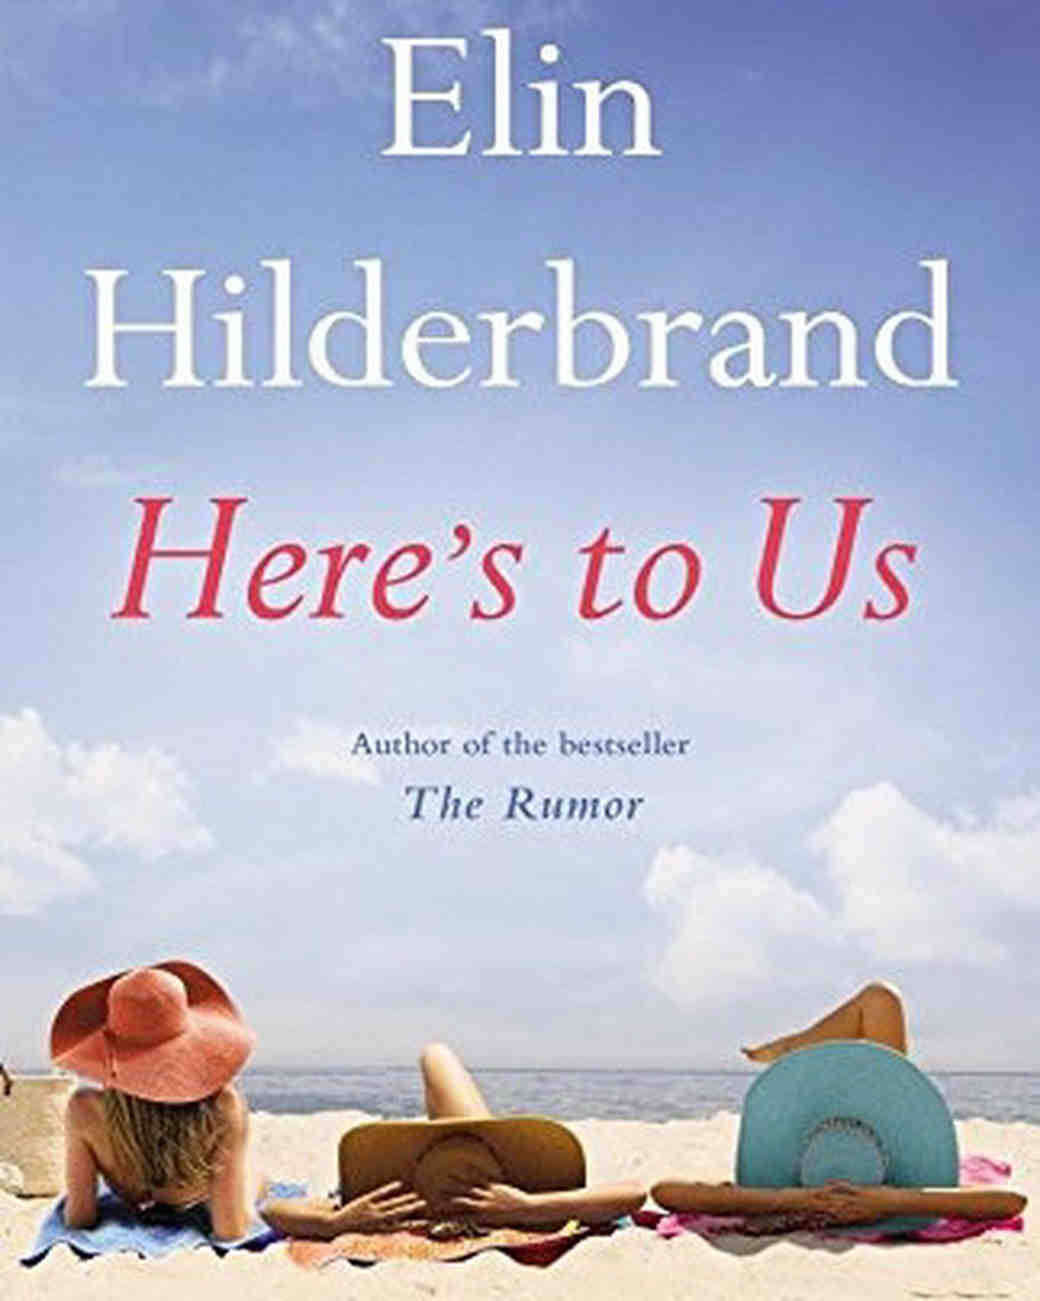 heres-to-us-cover-elin-hilderbrand-0616.jpg